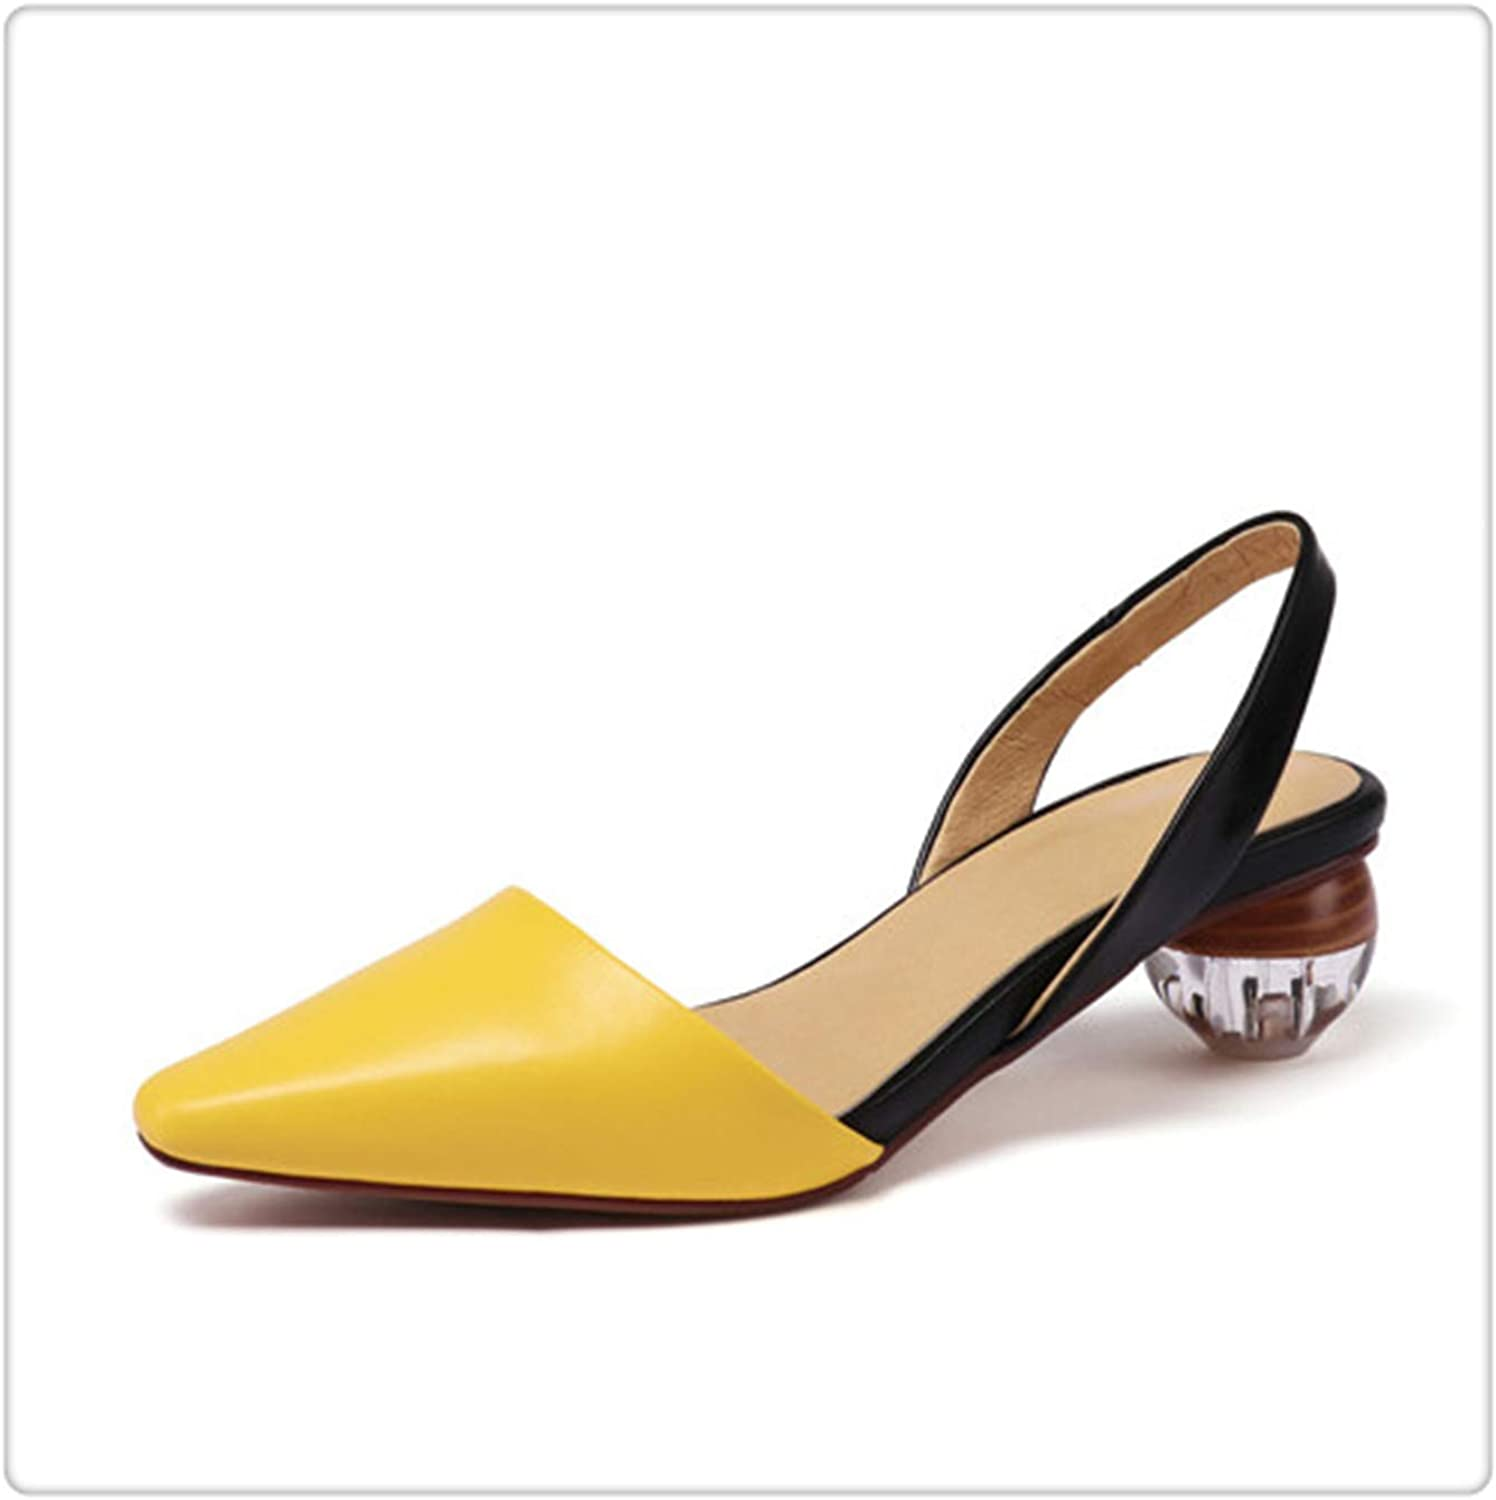 Yyixianma Women High Heel shoes Slingbacks Pumps Lady Sexy Pointed Toe Work Office shoes